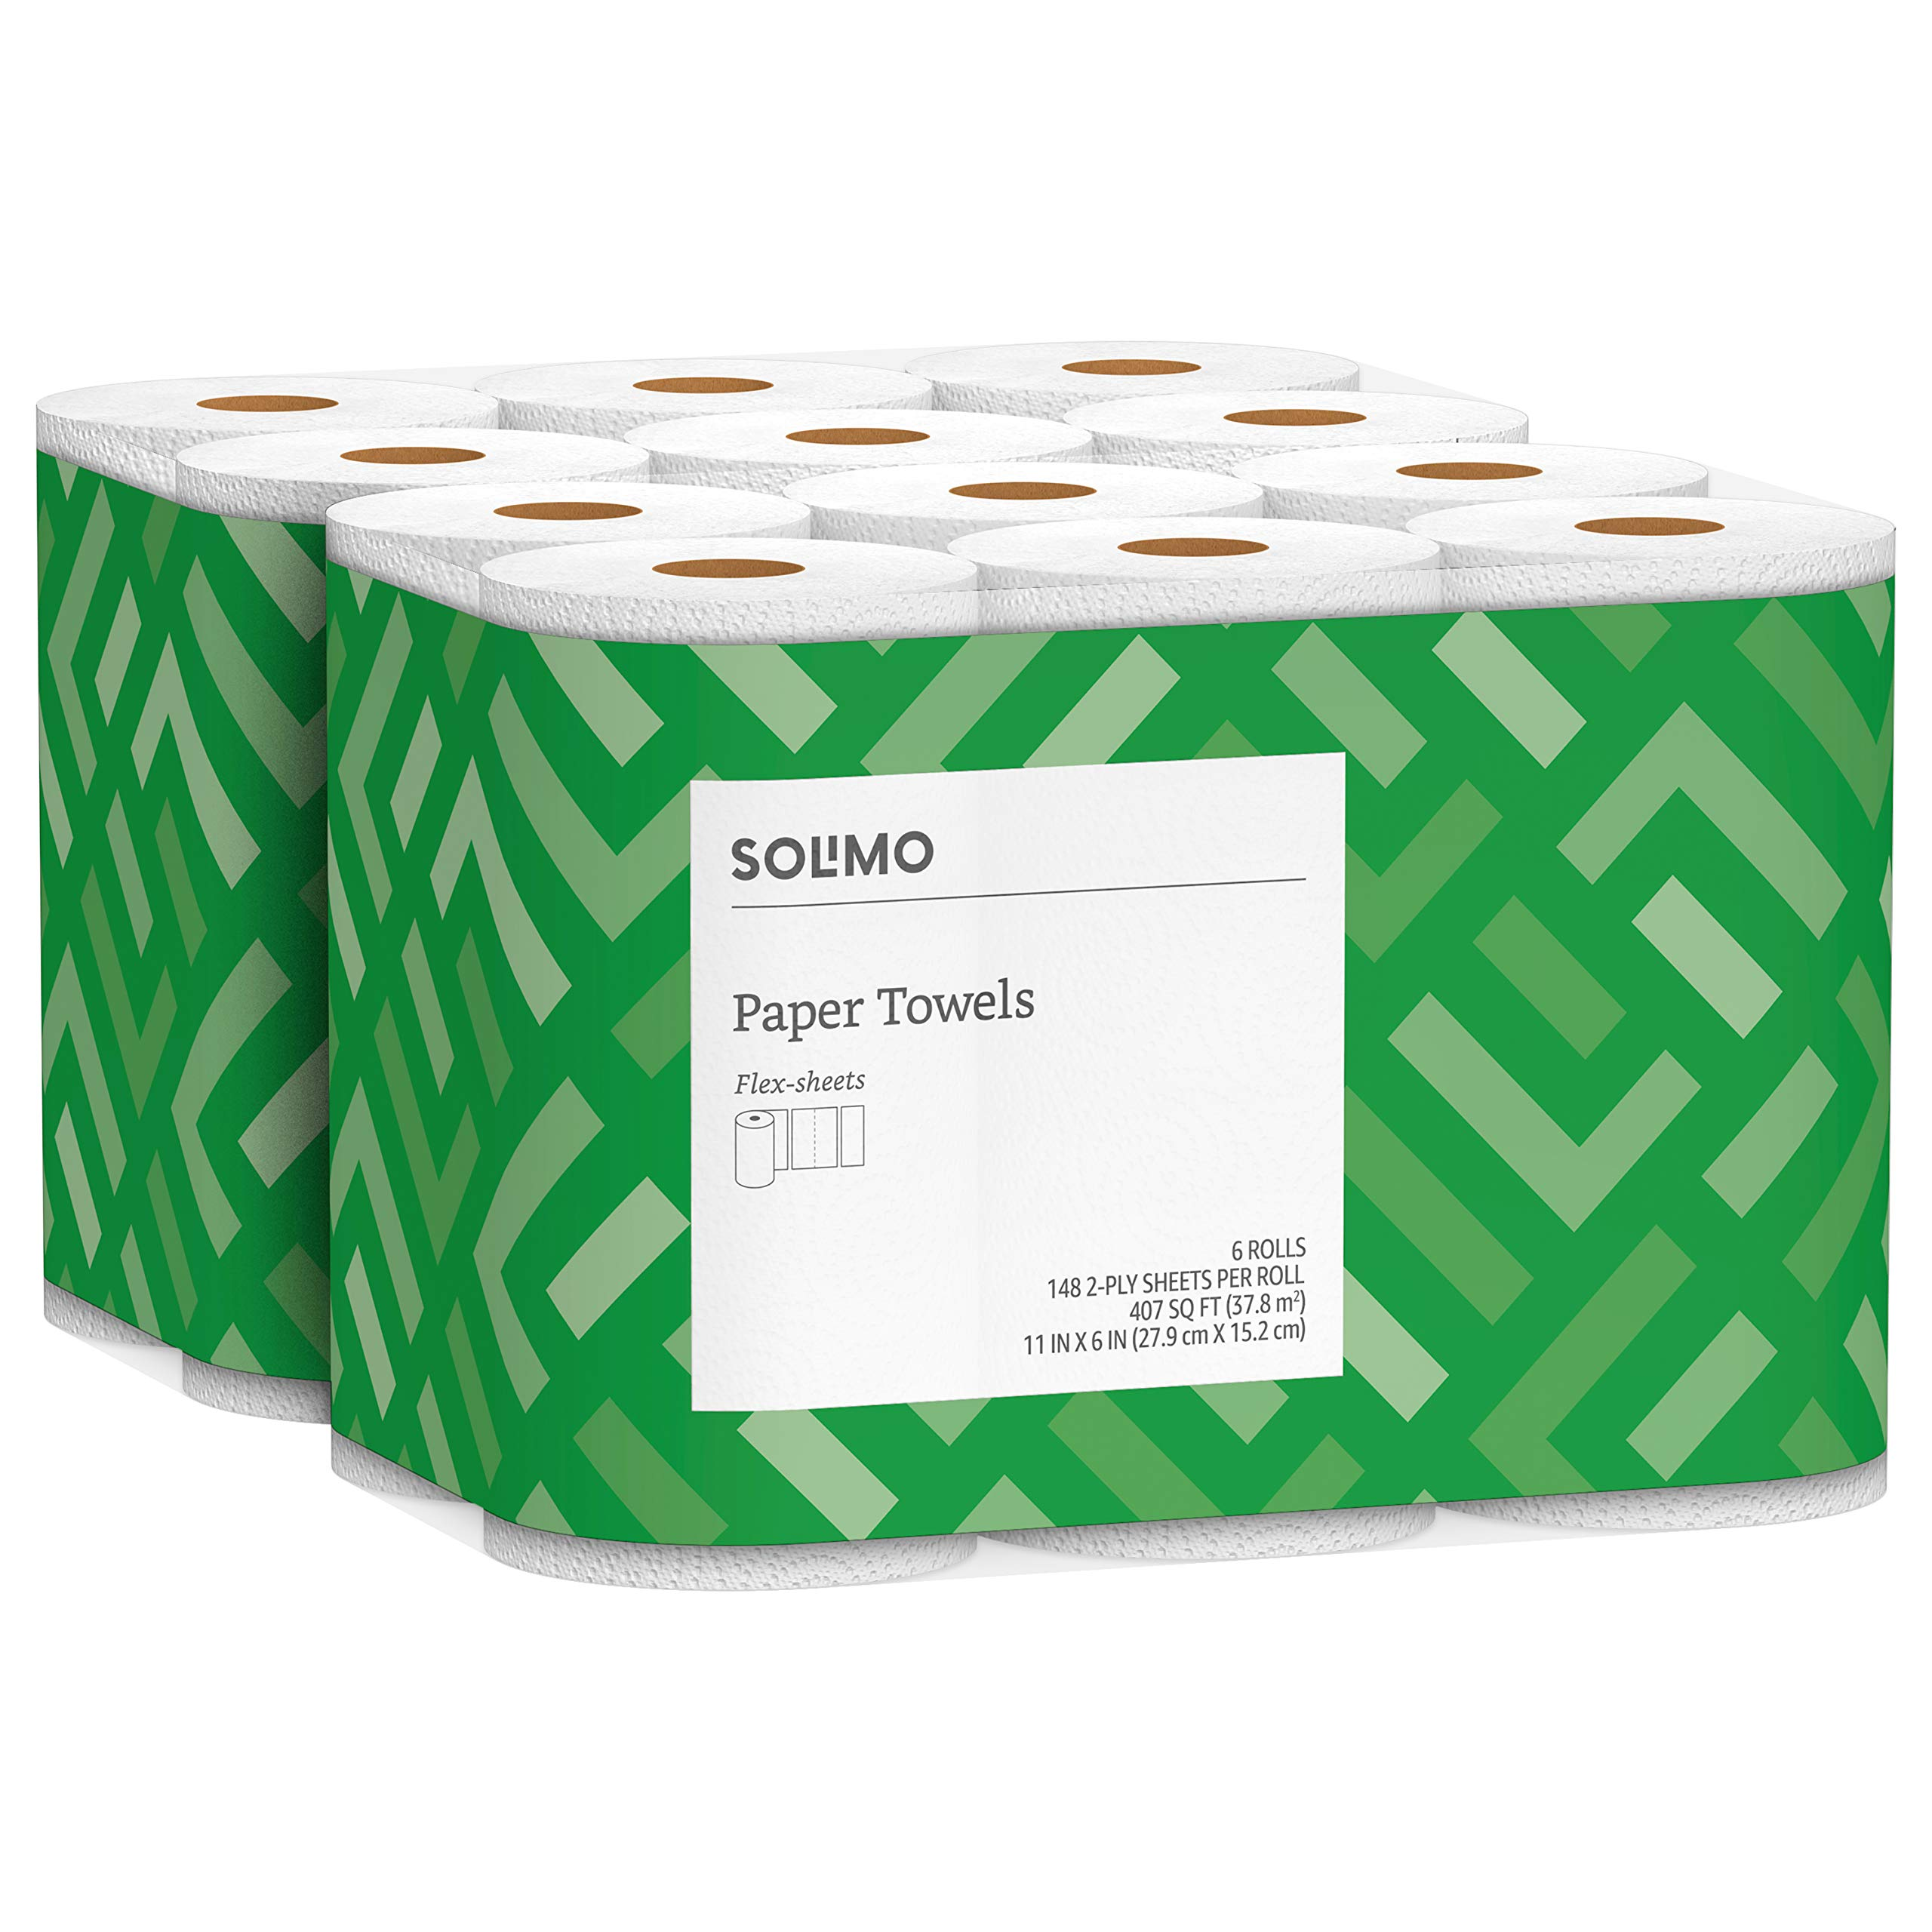 Solimo Basic Flex-Sheets Paper Towels, 12 Value Rolls, White, 148 Sheets per Roll (New Version)